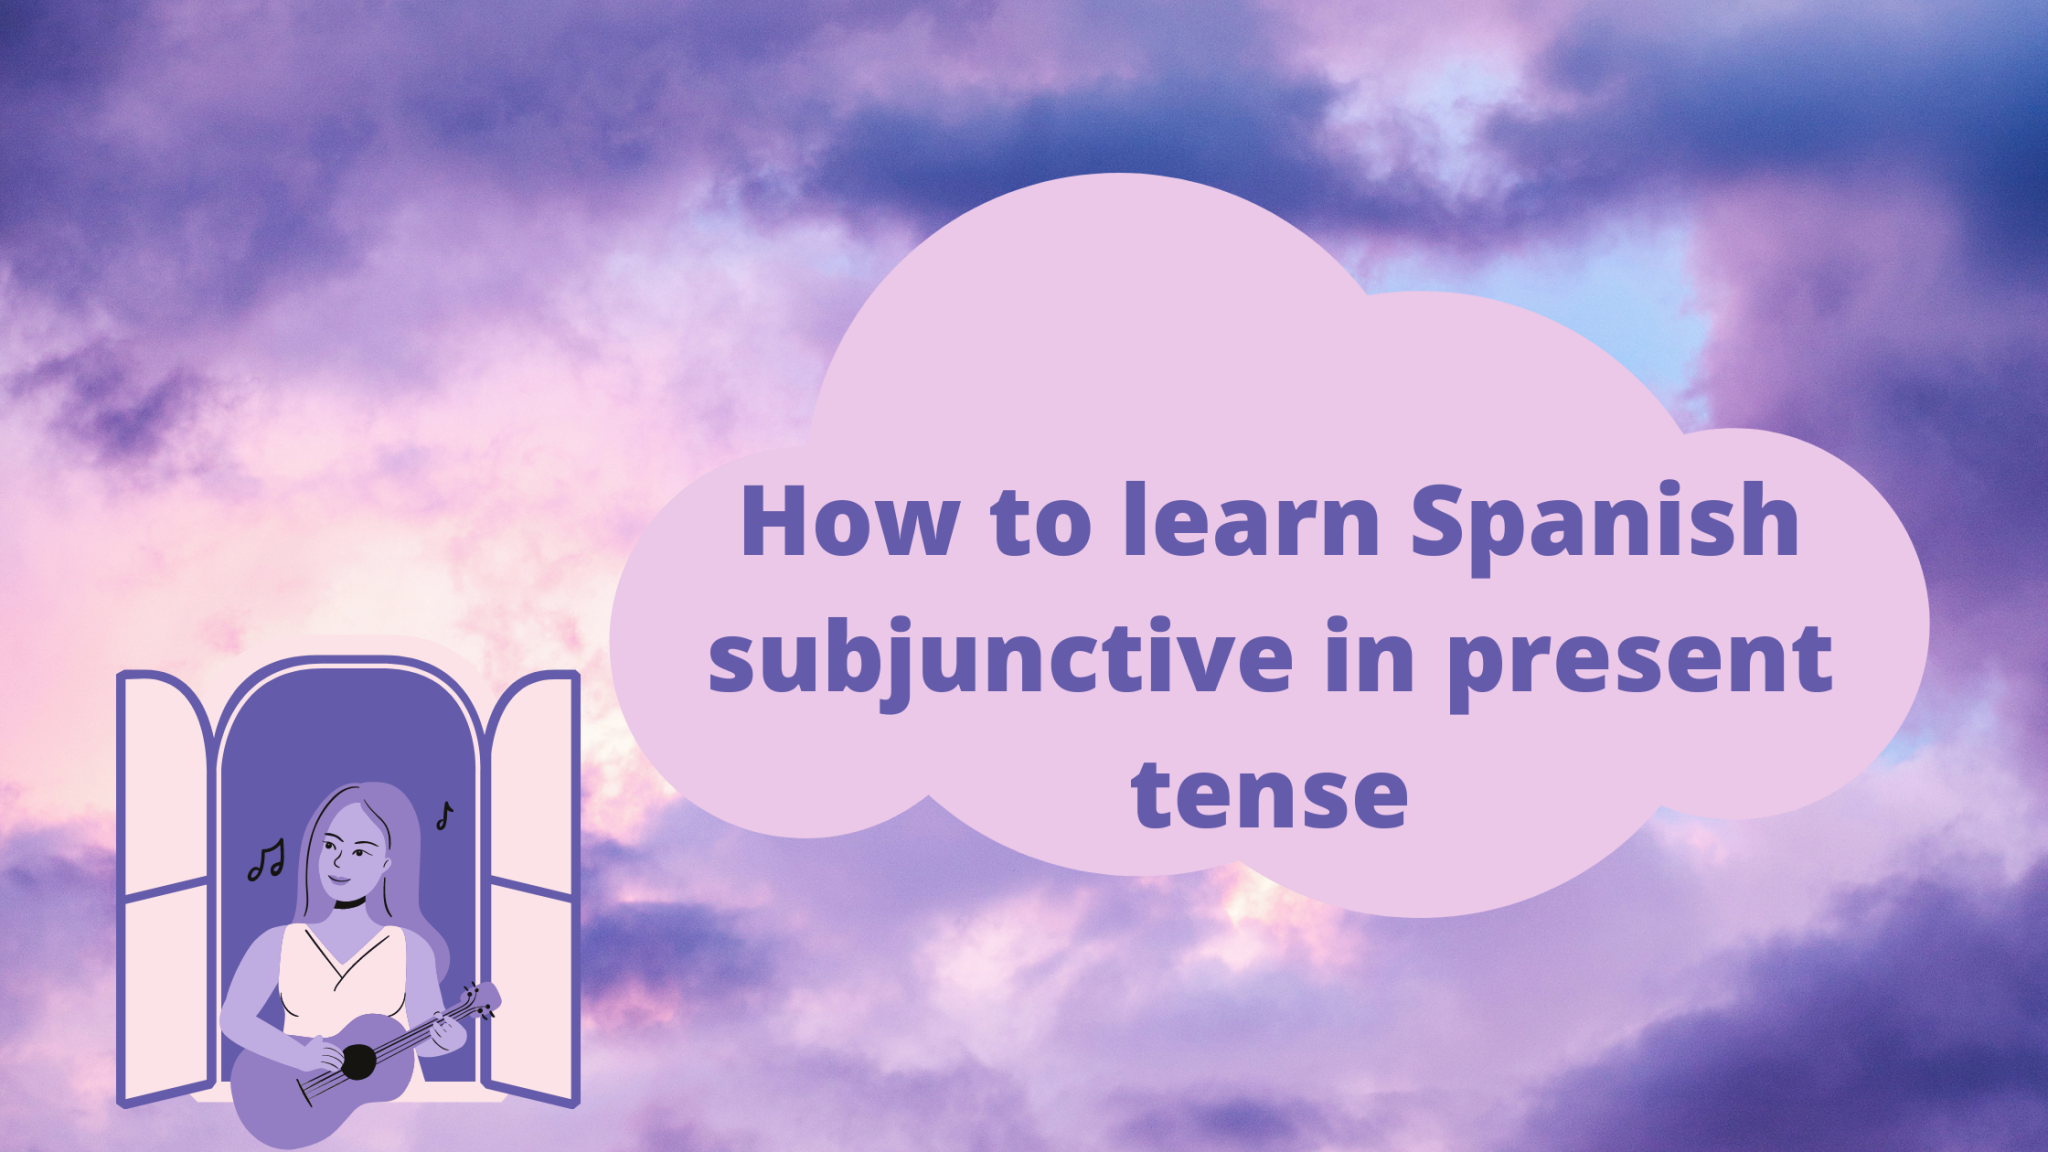 How to learn Spanish subjunctive in present tense